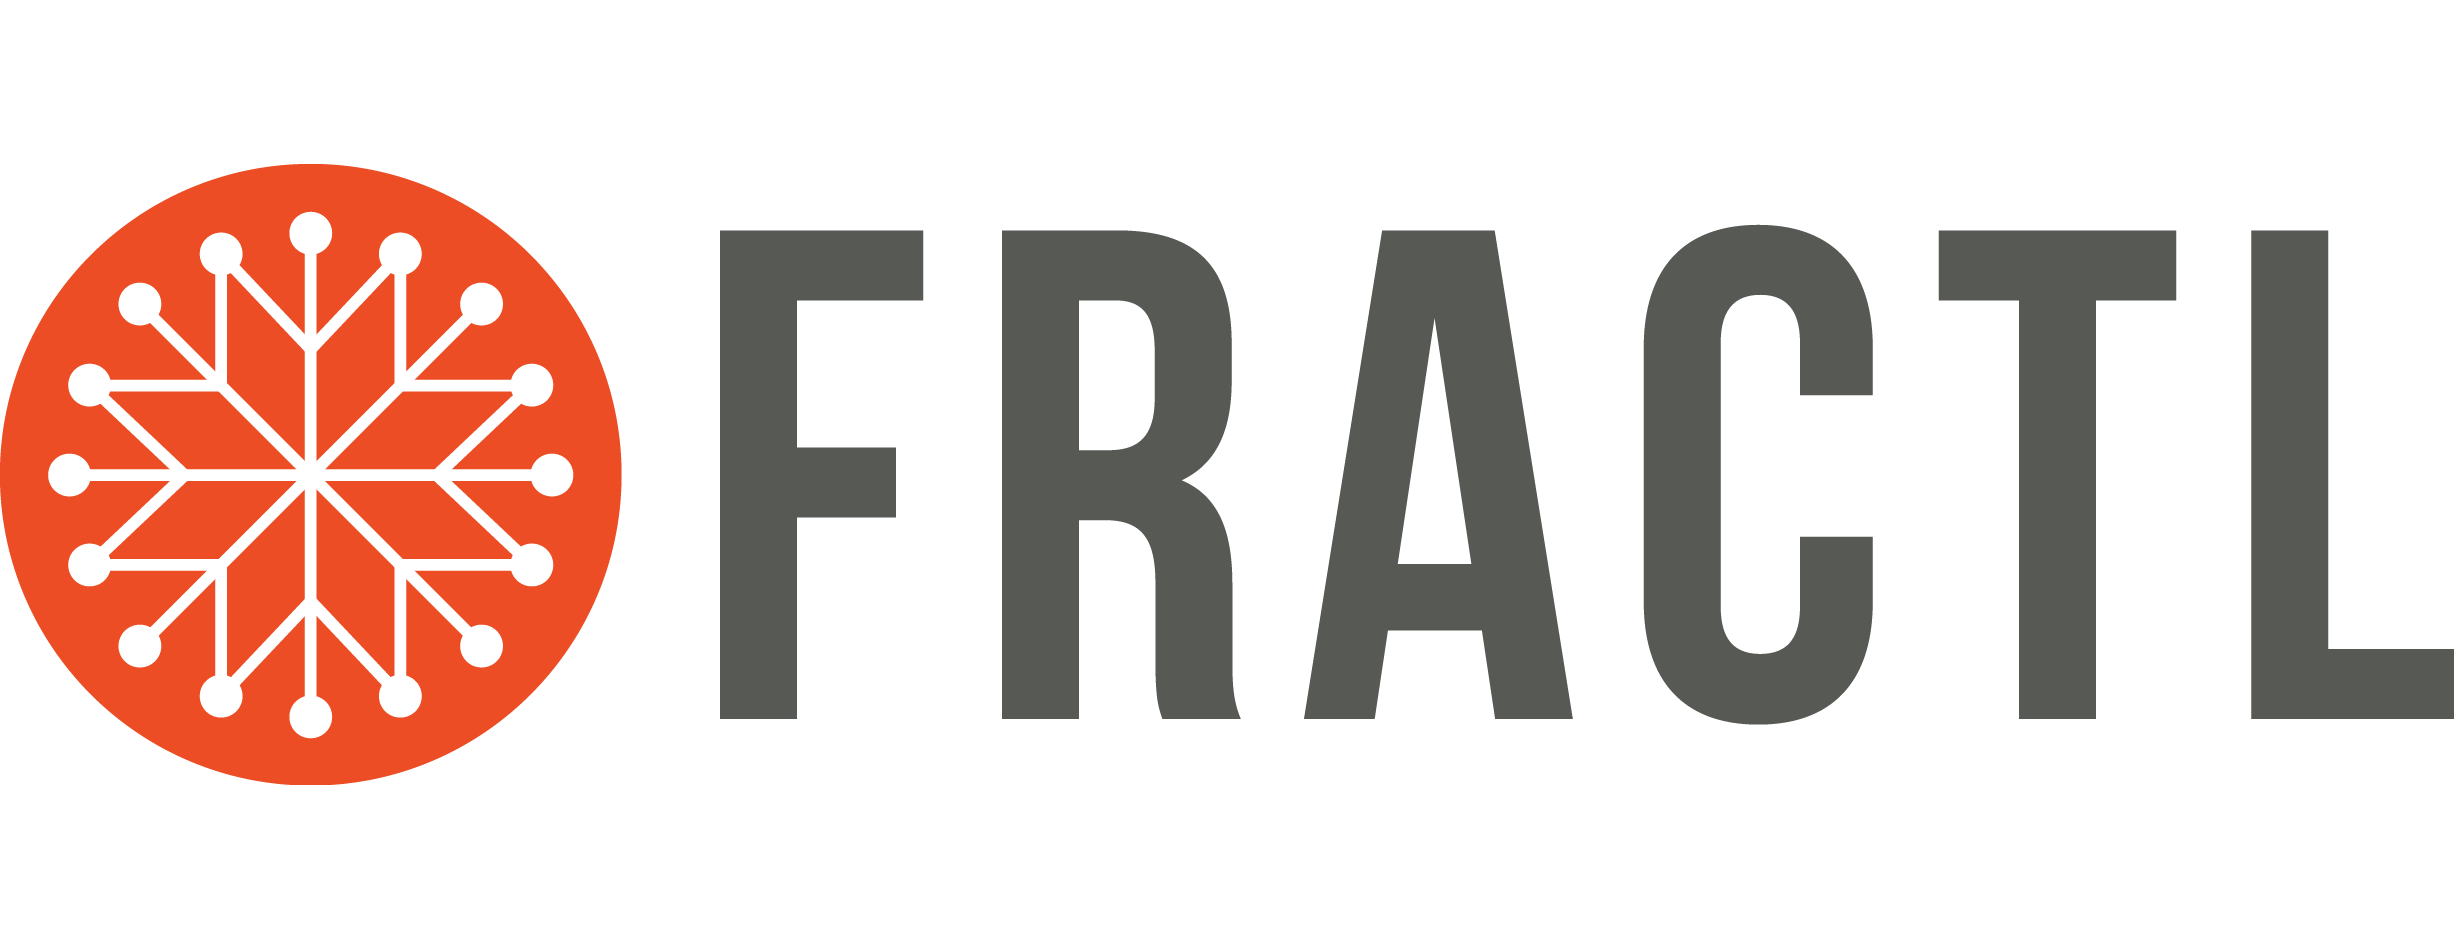 fractl.png